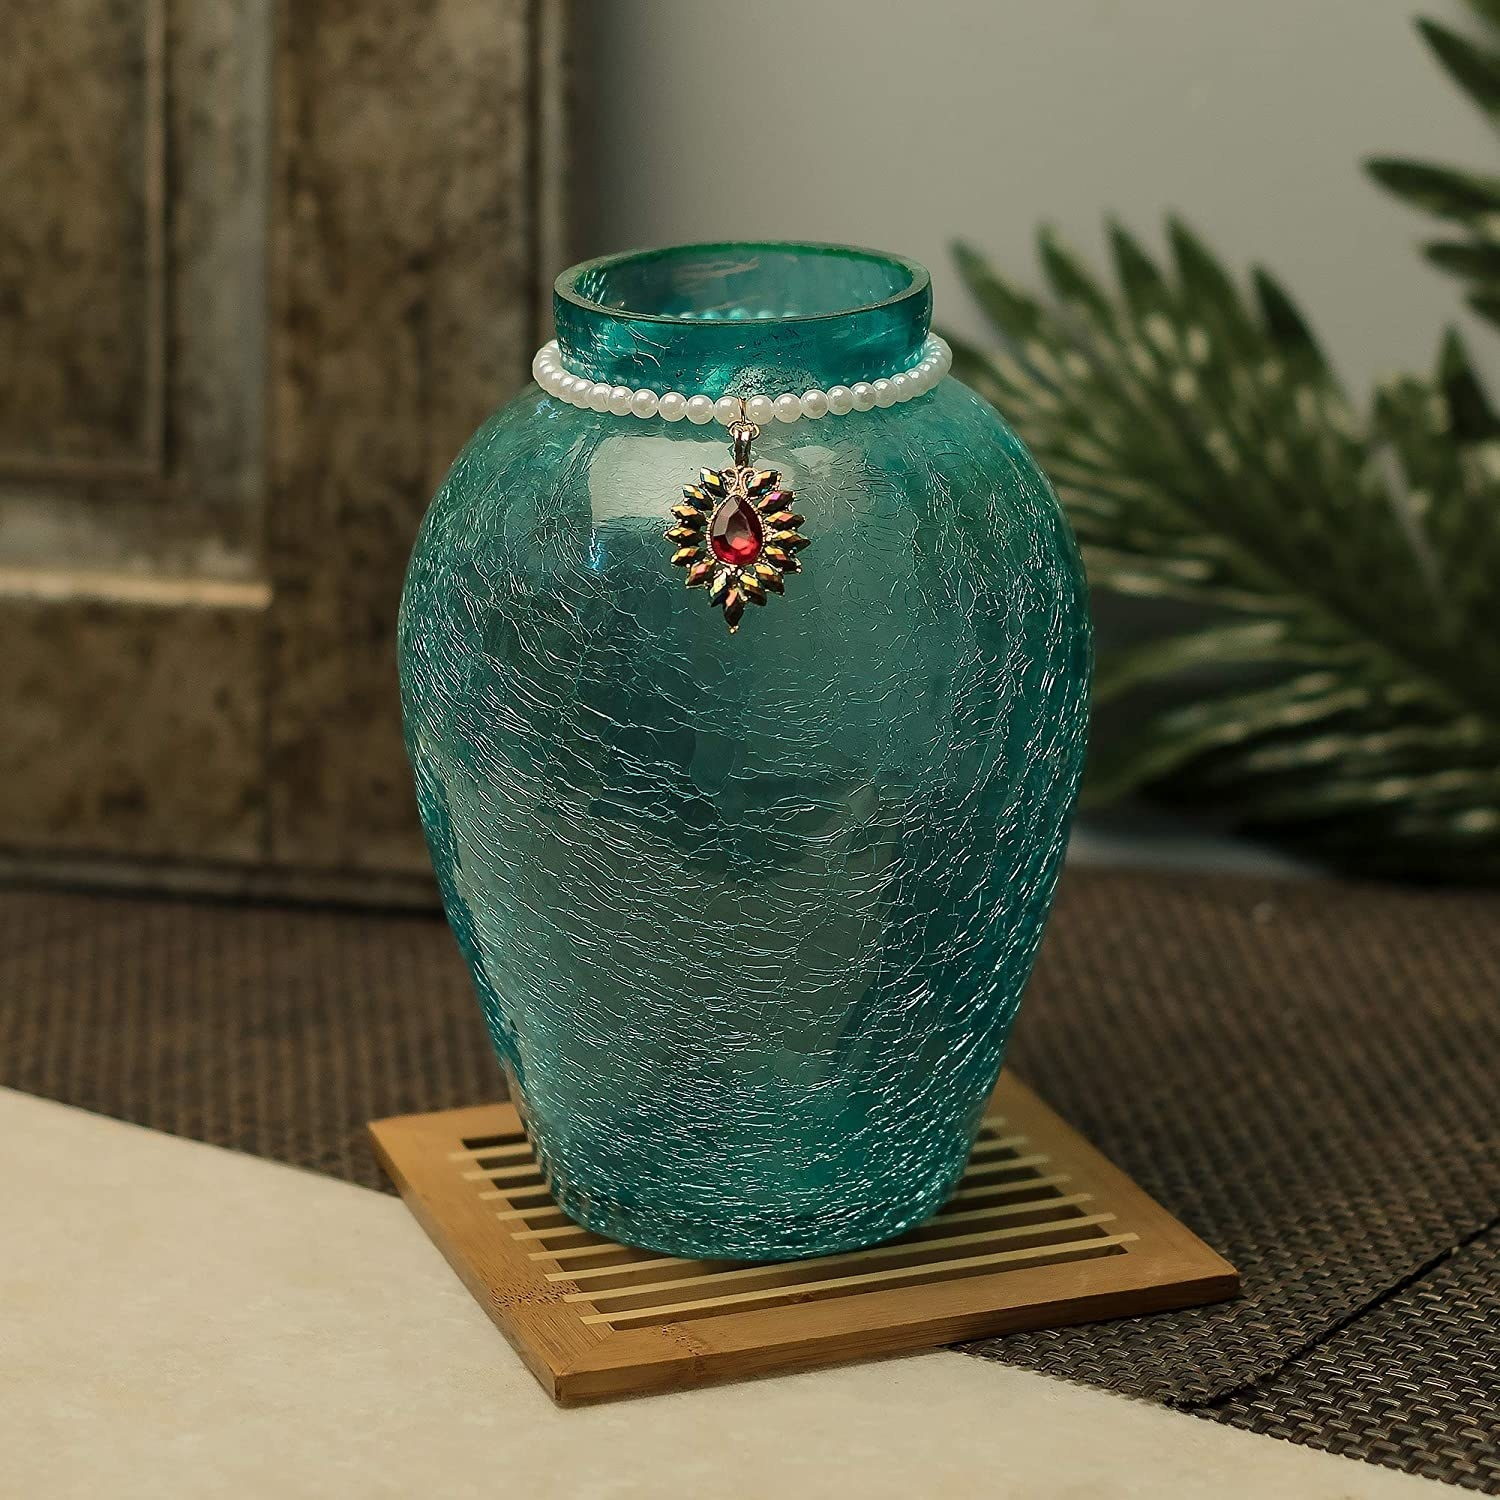 A turquoise vase with a necklace around the top